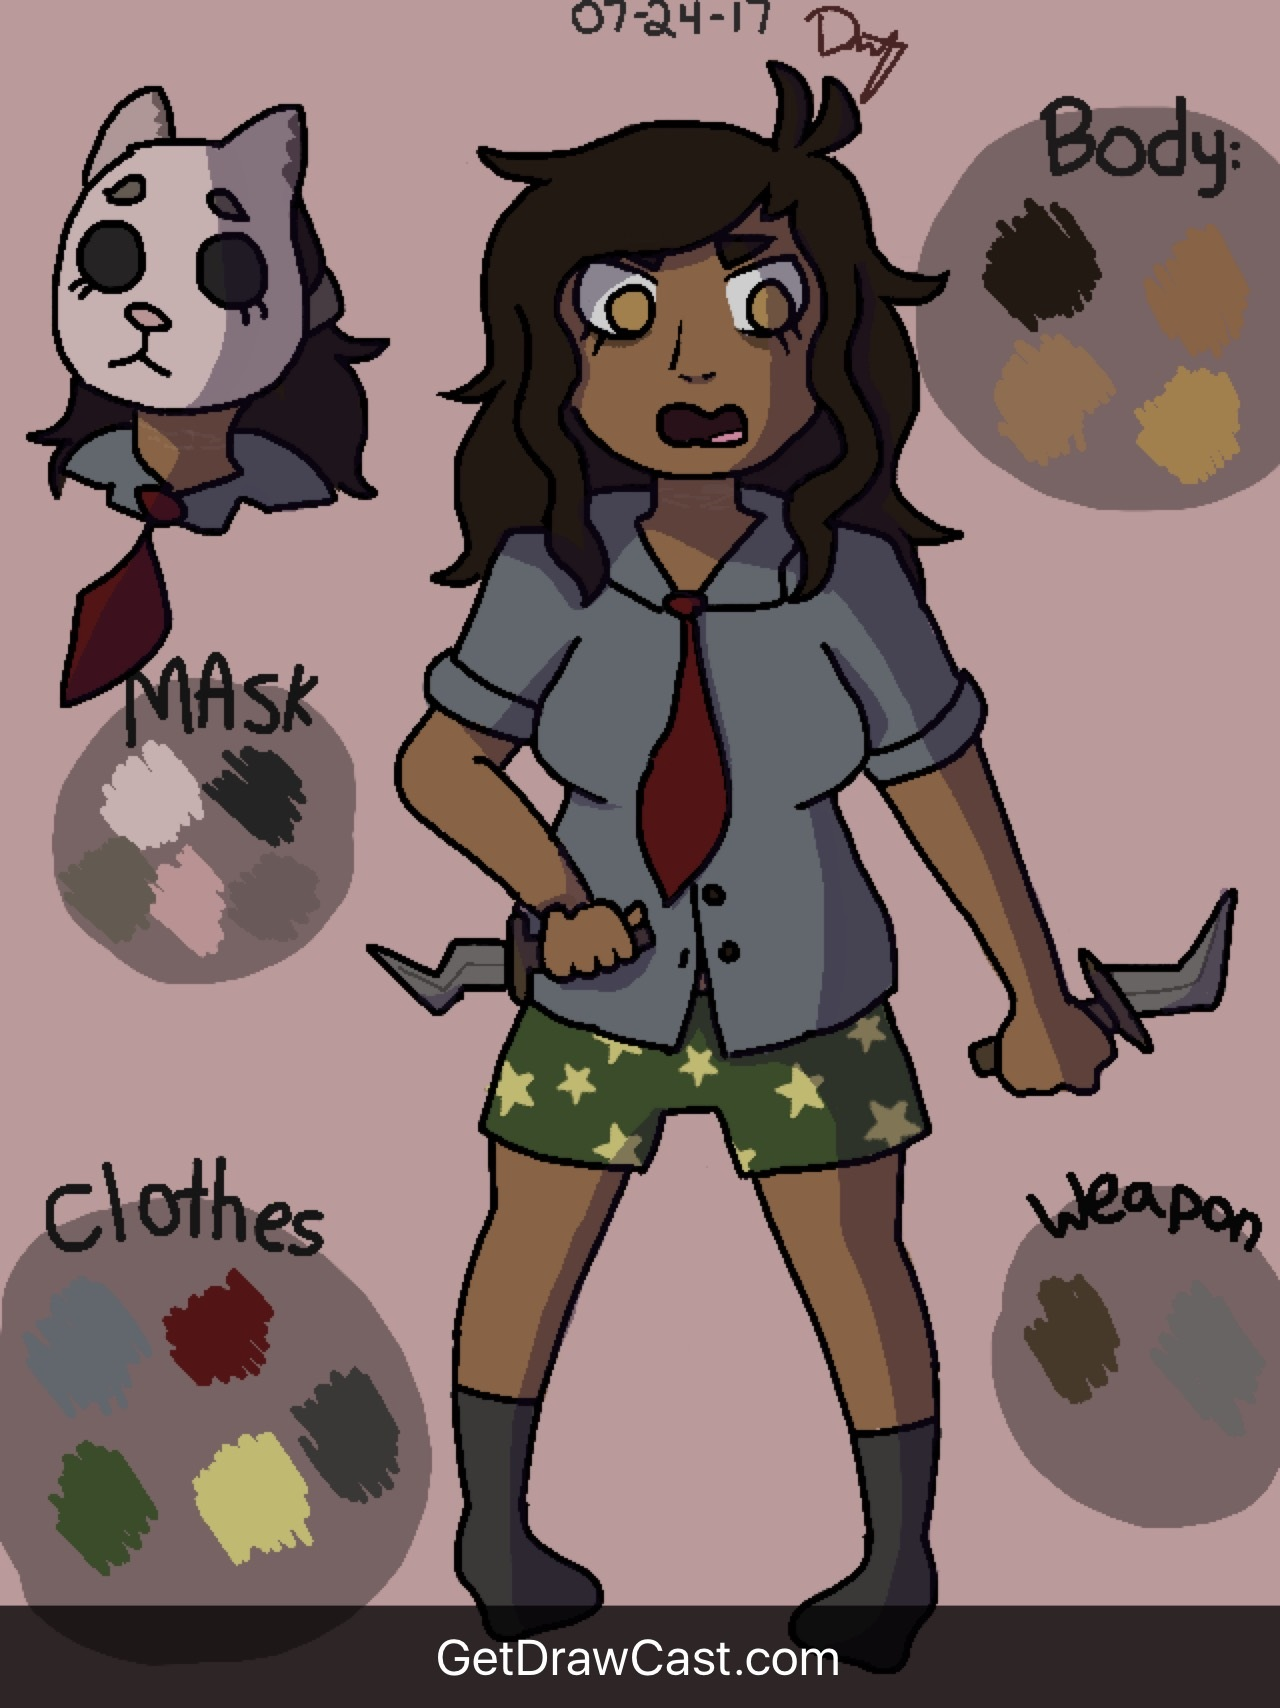 Ditzalia Ref (sorry the quality is bad) by MooseyDooz